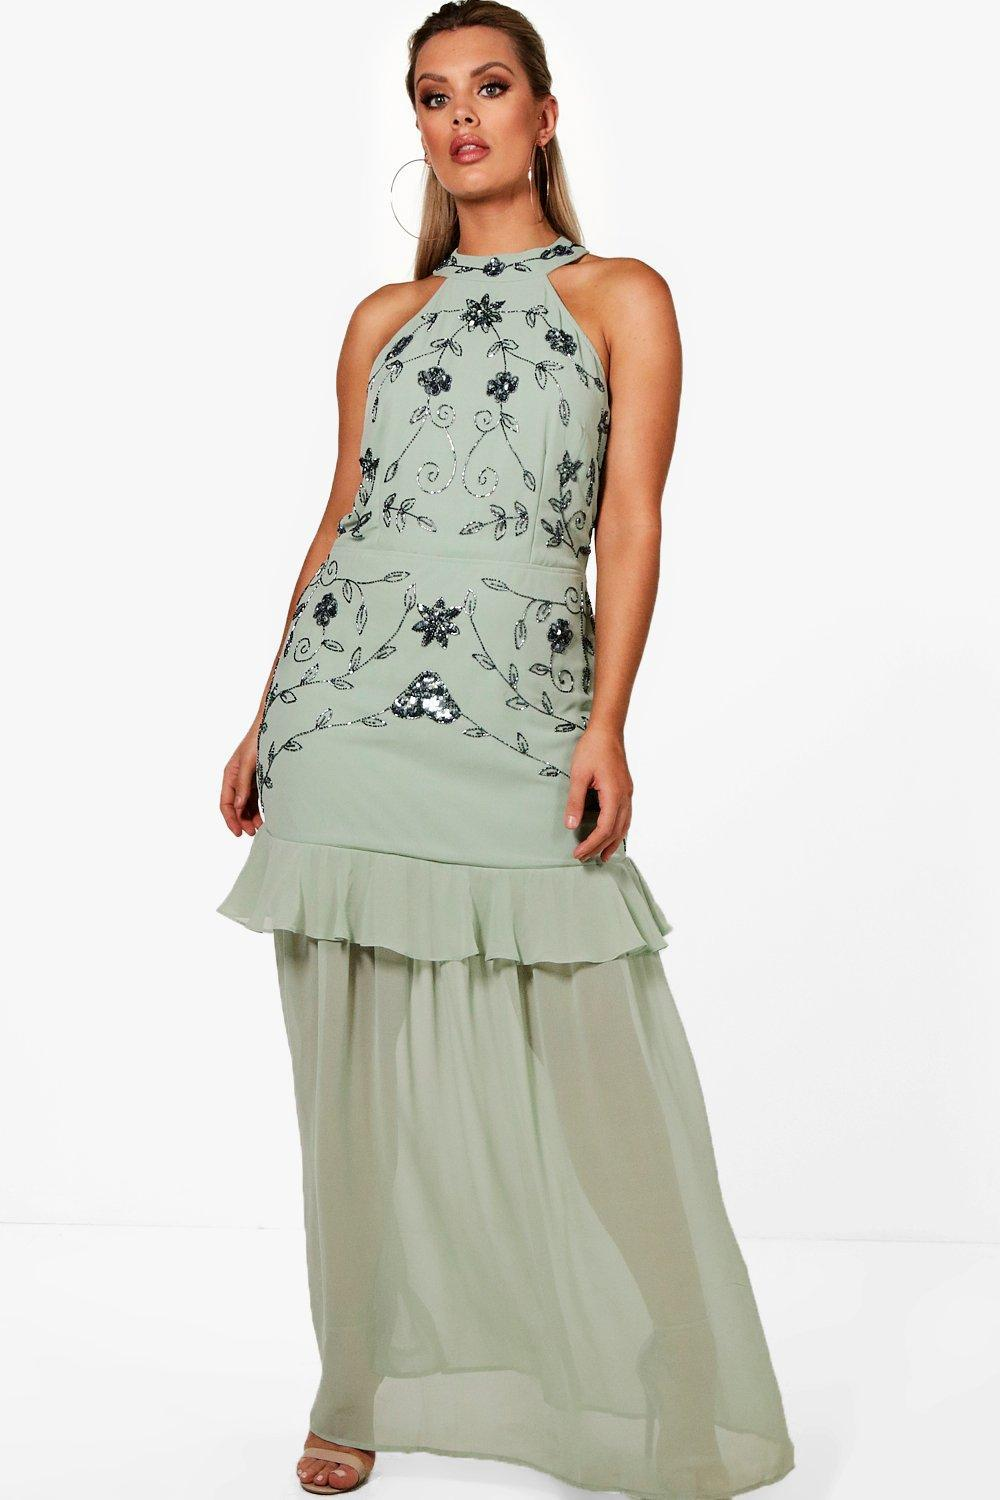 6458bf19e238 Gallery. Previously sold at: Boohoo · Women's Halterneck Dresses ...